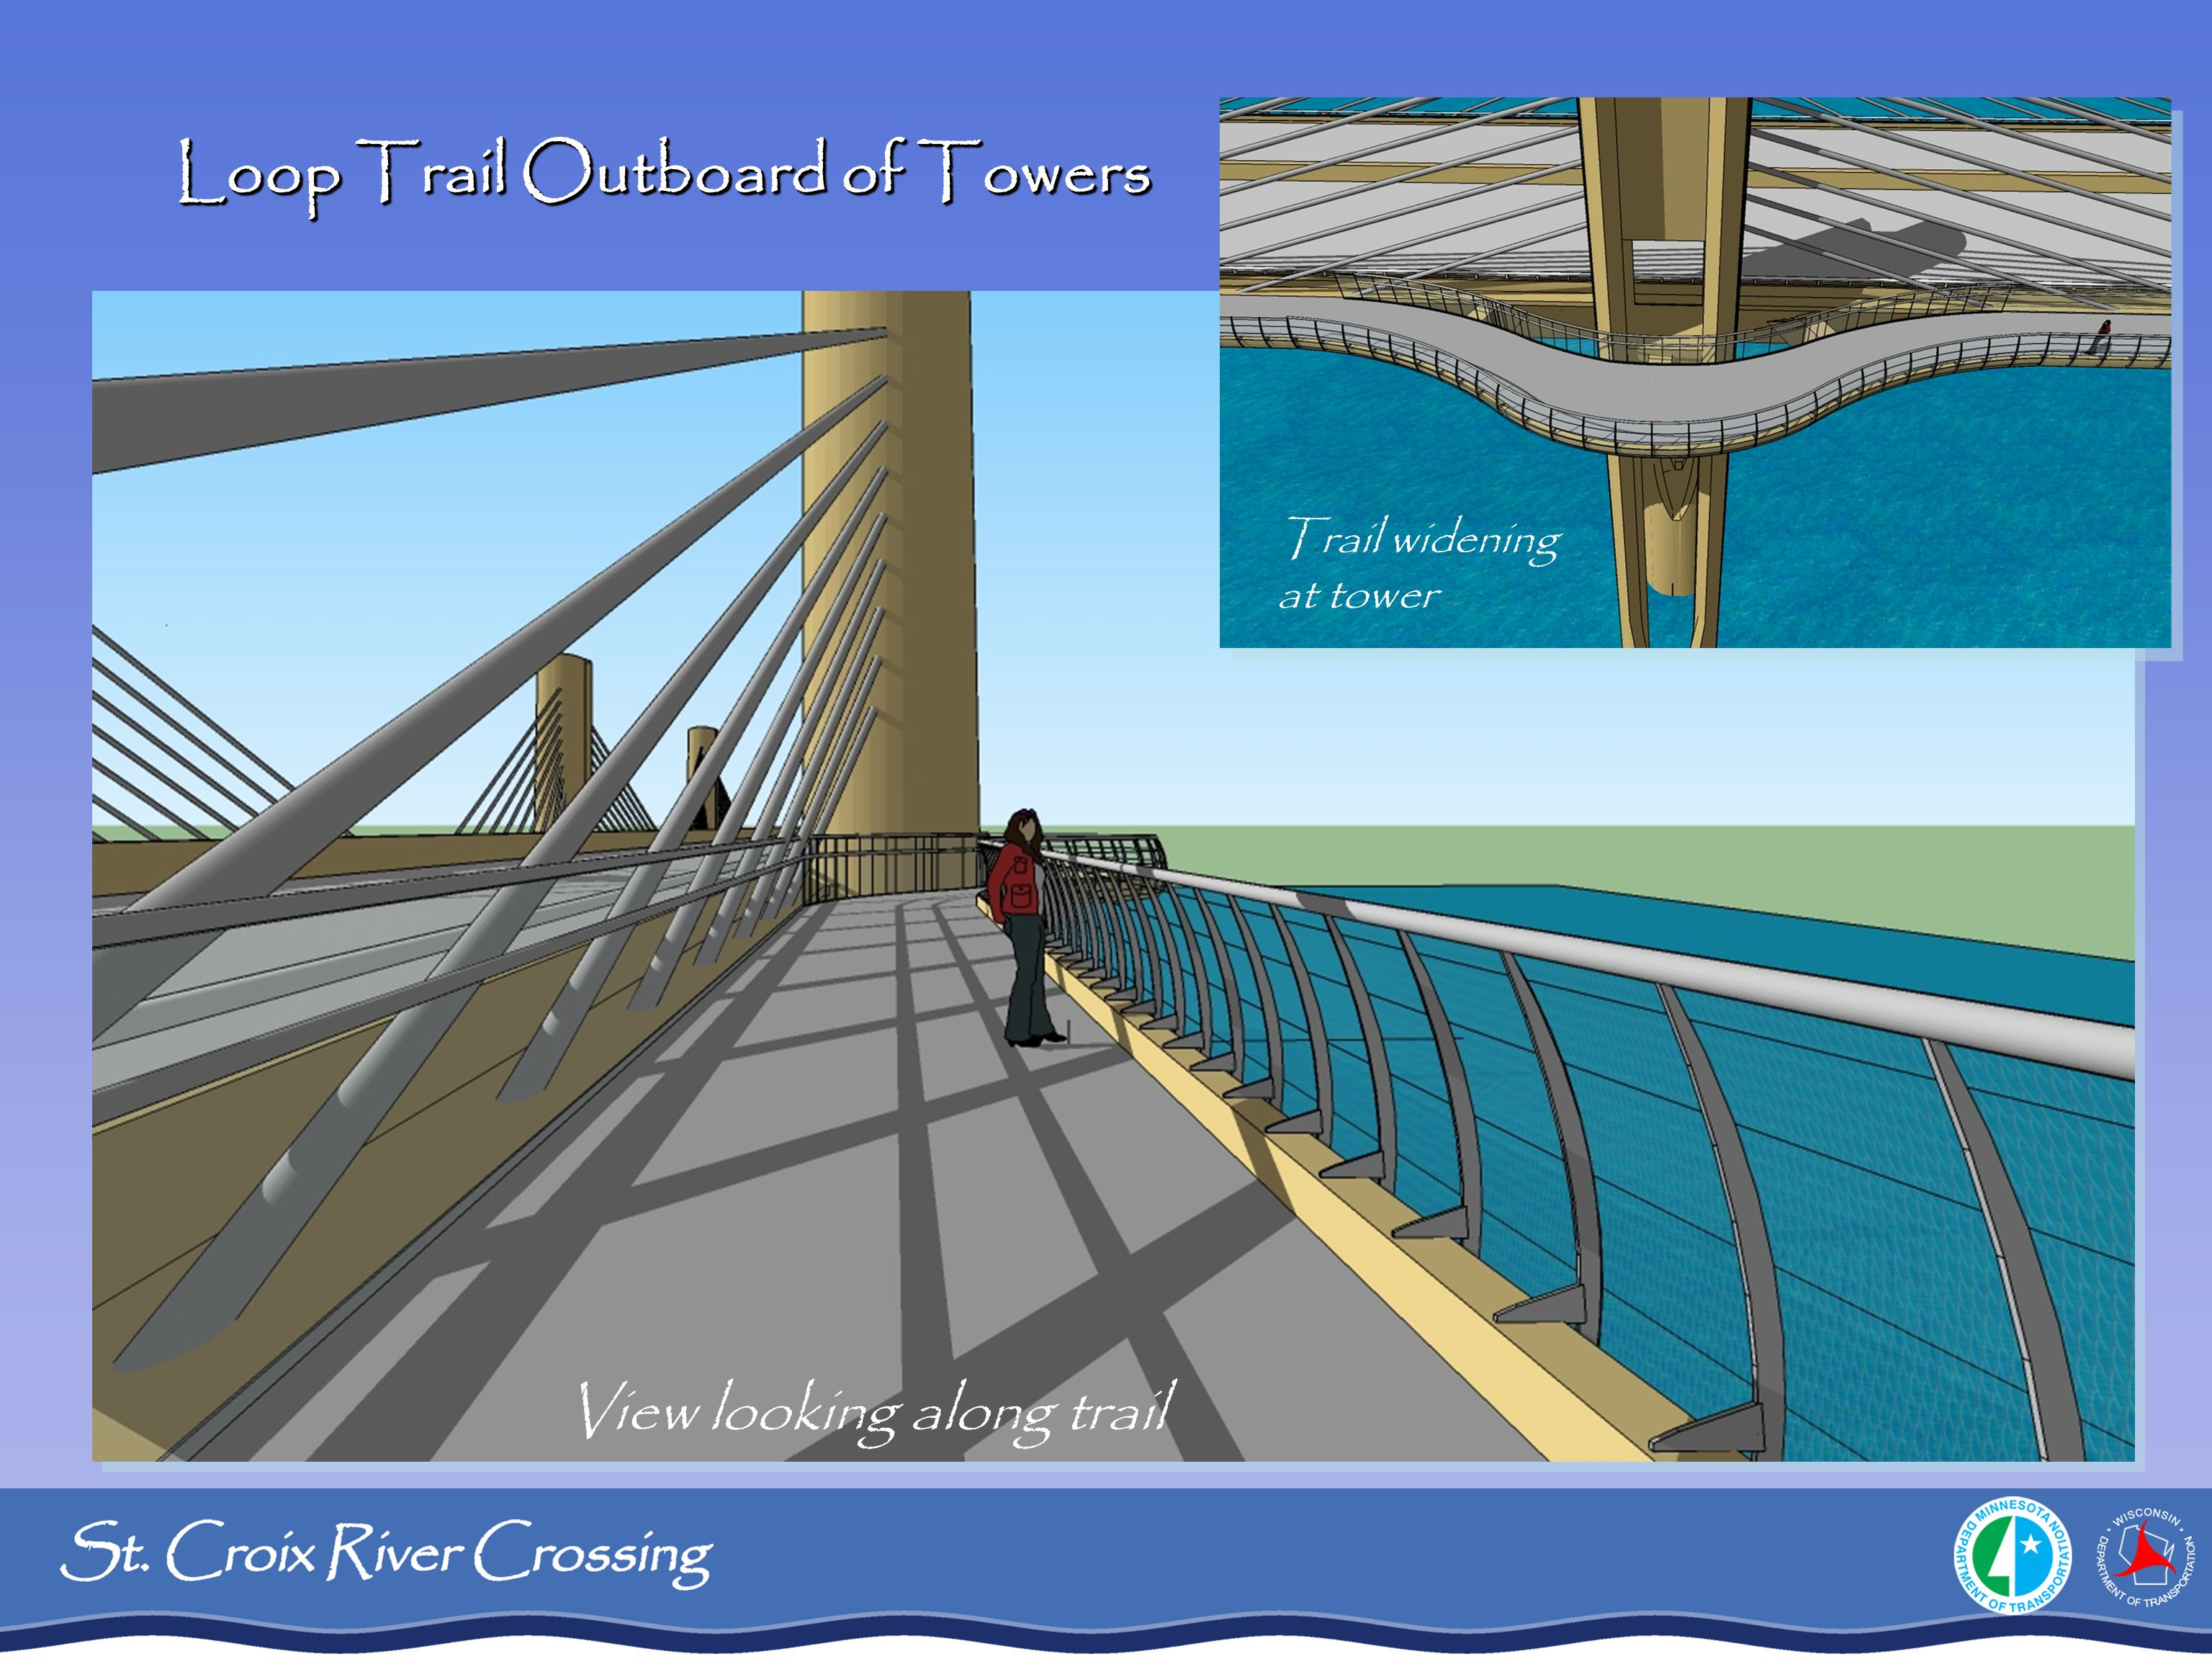 Loop Trail Outboard of Towers